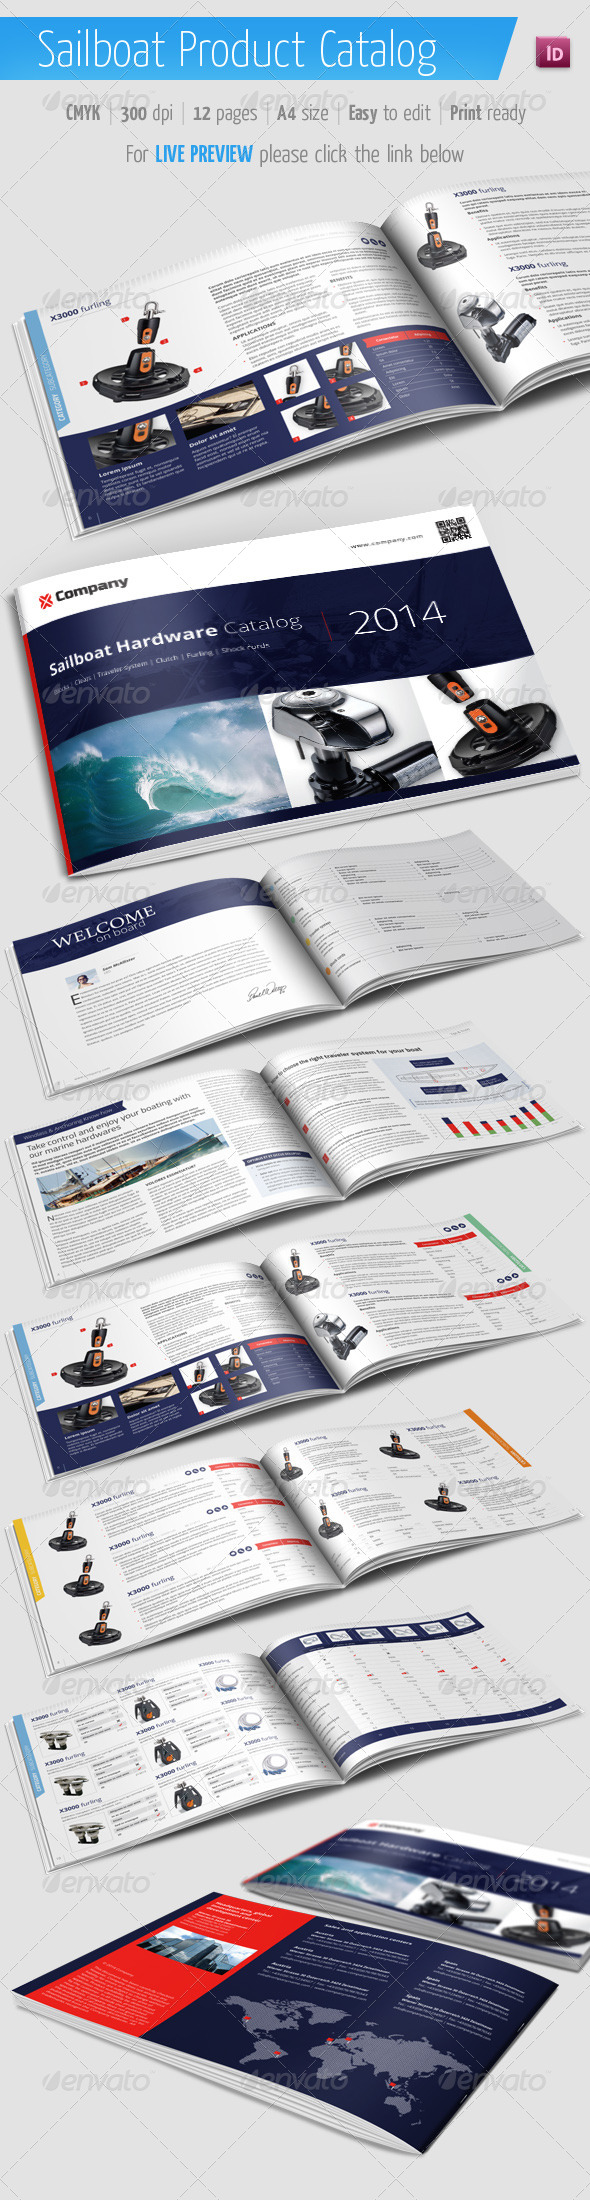 GraphicRiver Sailboat Product Catalog Marine Brochure 6713244